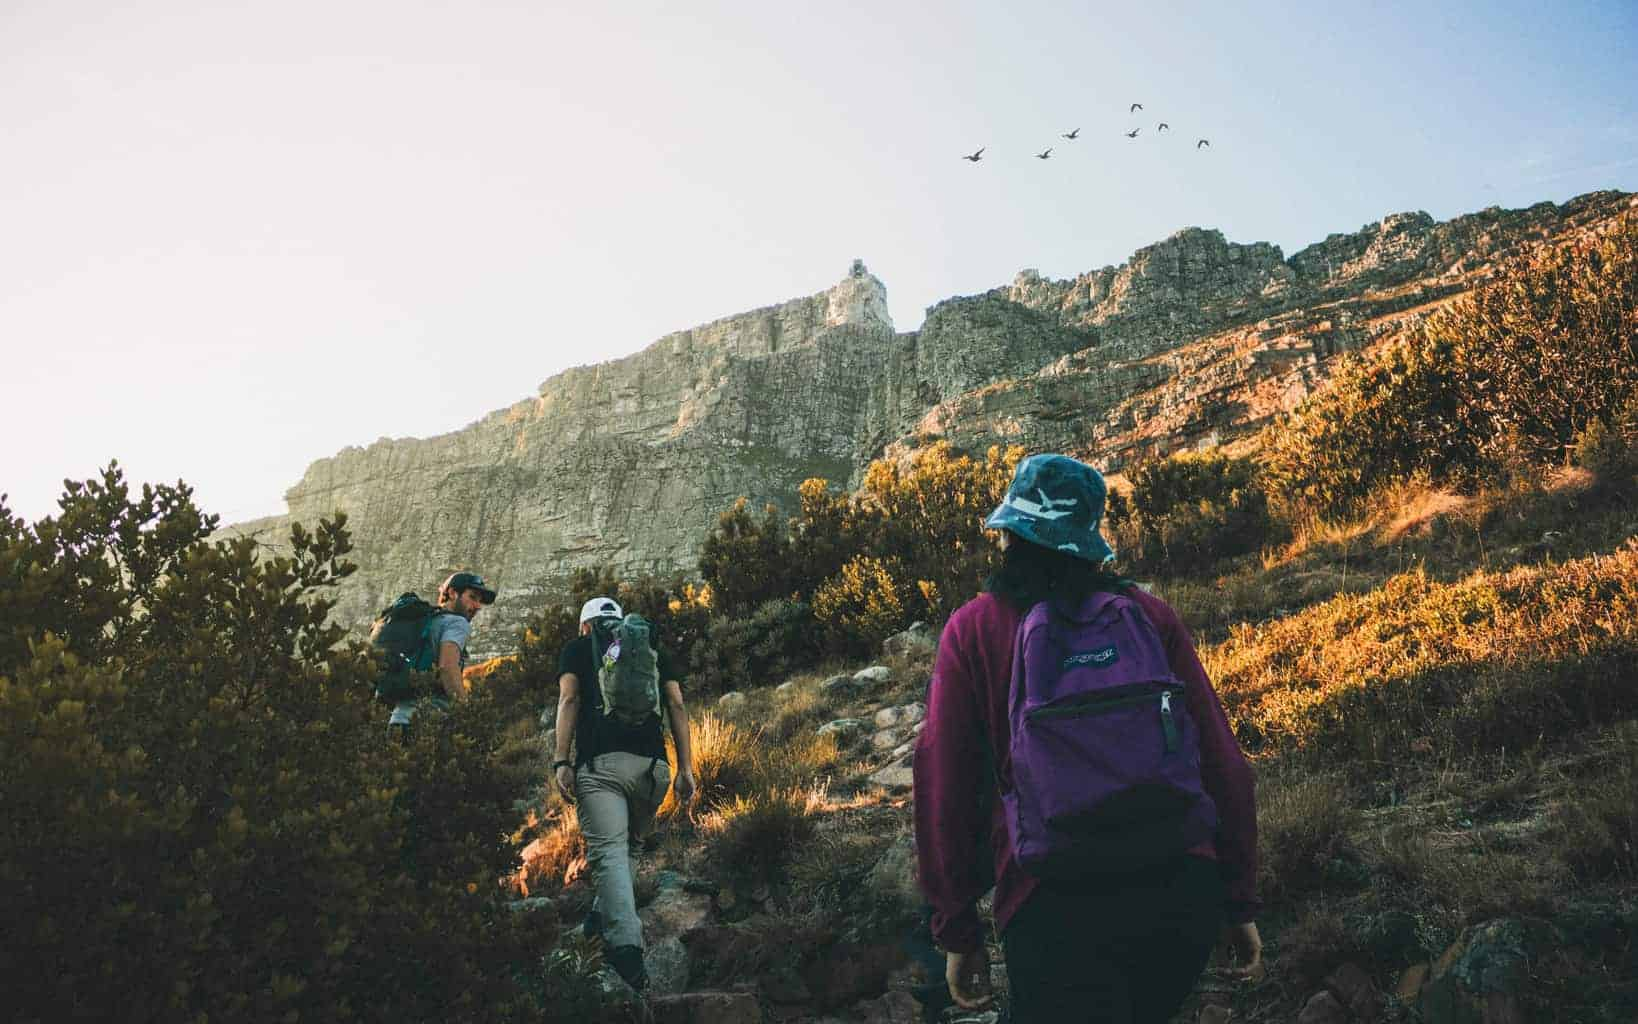 The 5 Best Jansport Backpacks For Hiking Reviewed [2020]